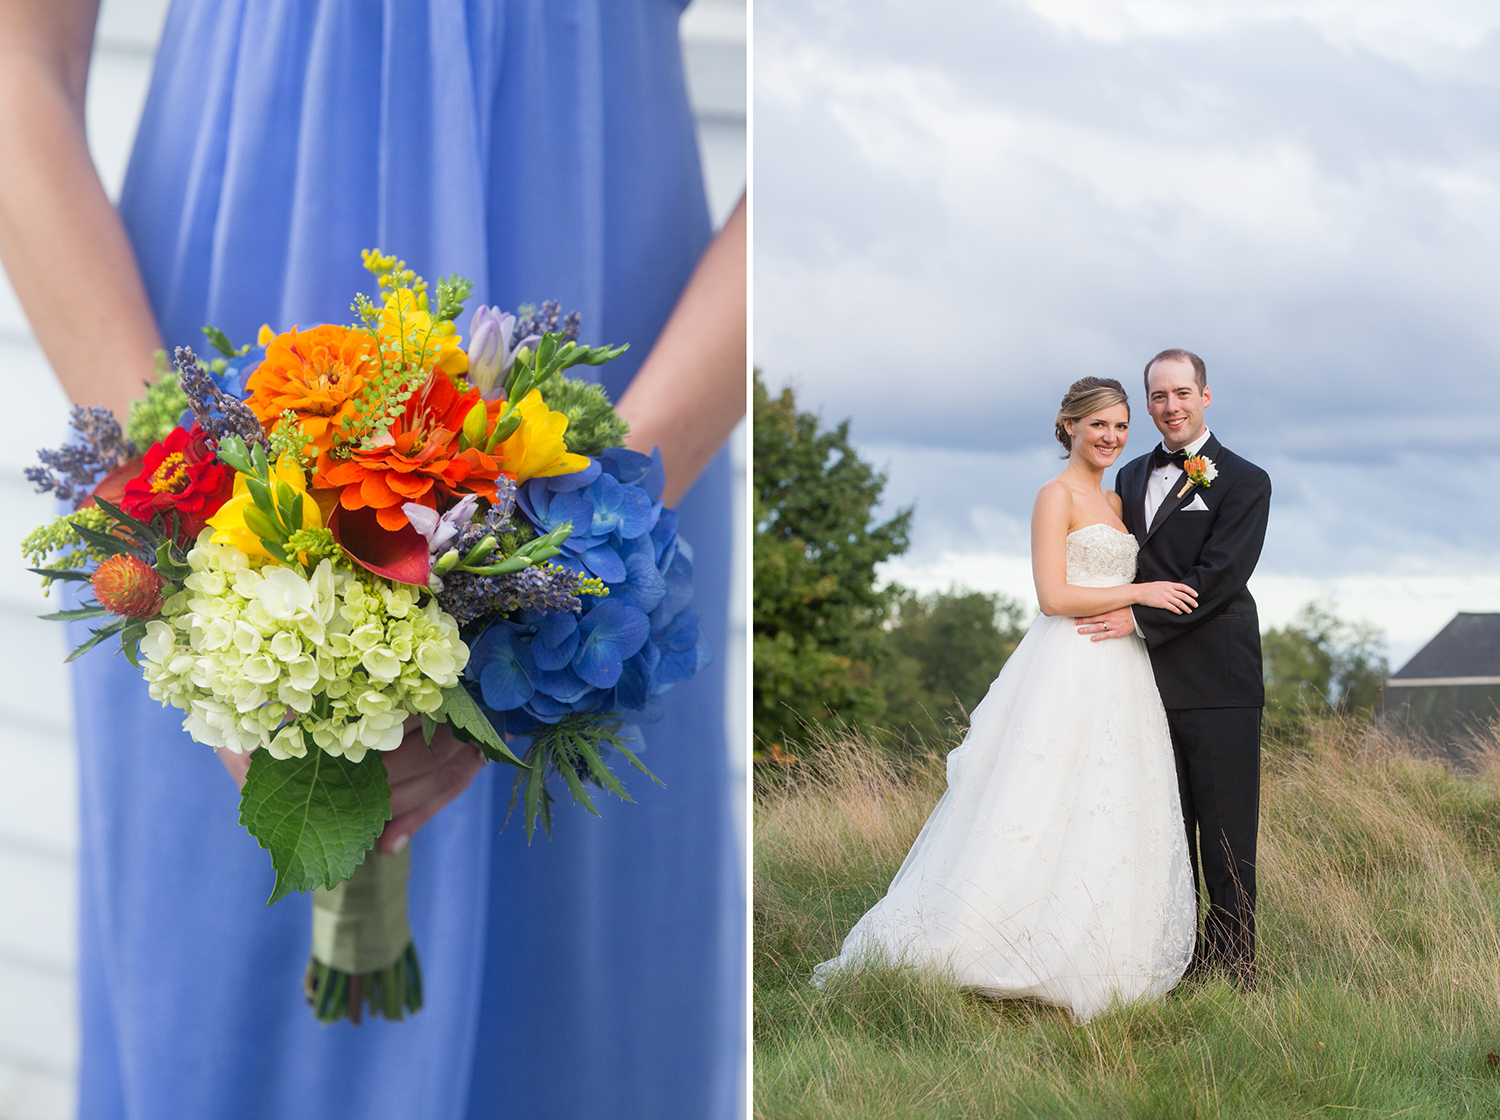 FallWedding_TheRanchWedding_MichelleGirardPhotography14.jpg